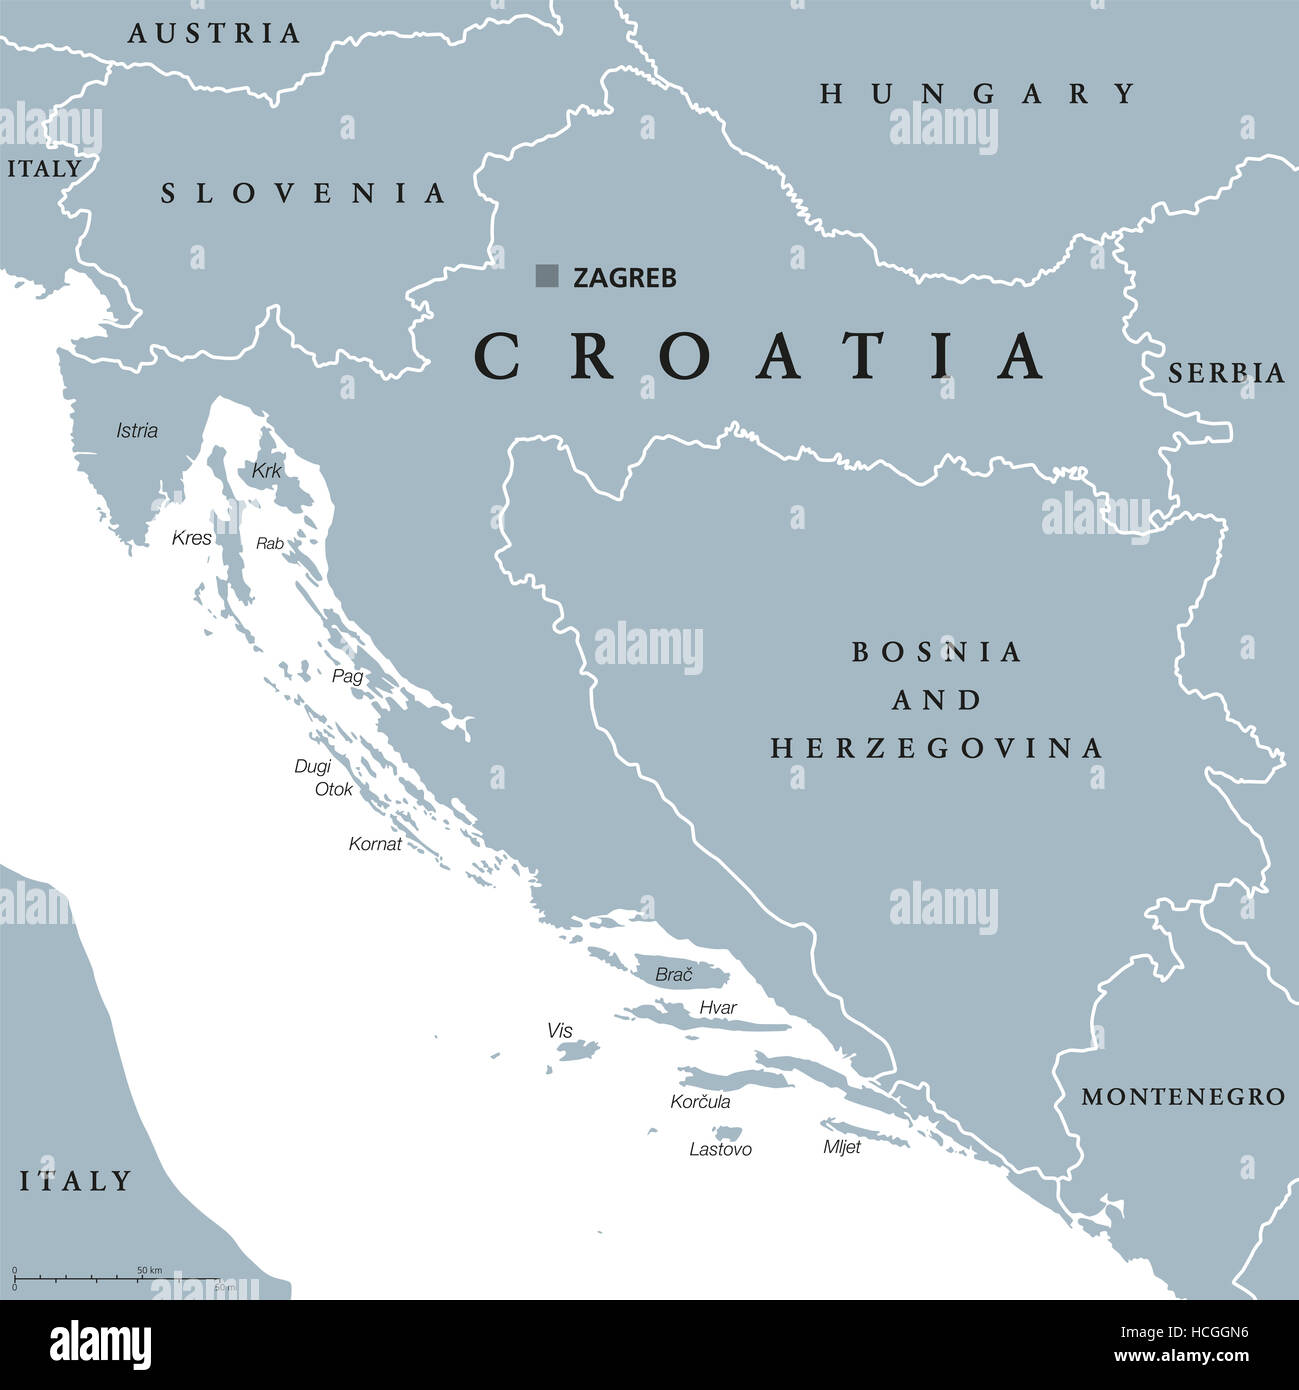 Croatia Political Map With Capital Zagreb National Borders And